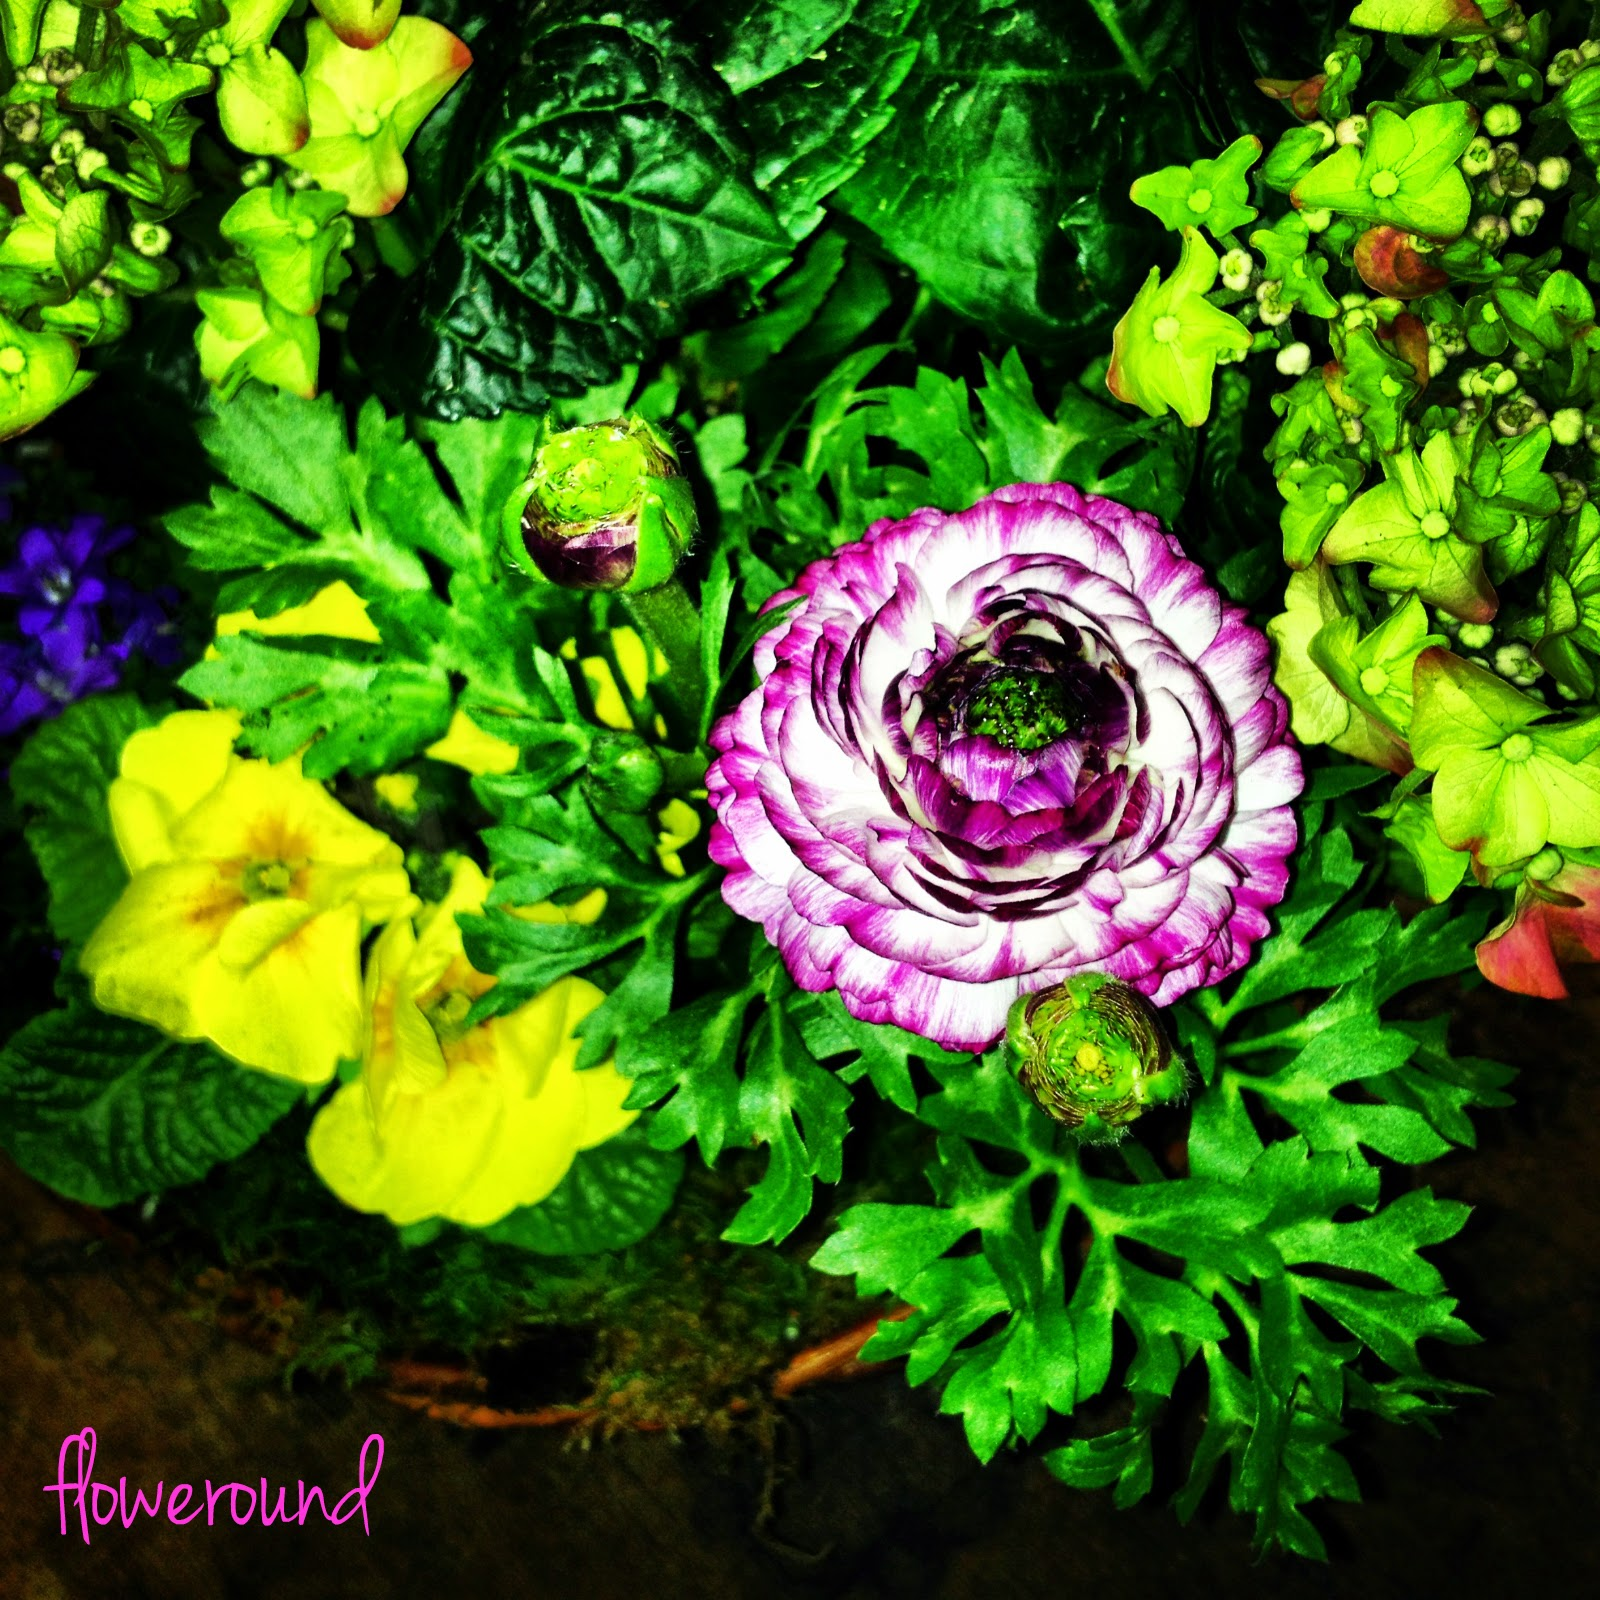 FLOWEROUND - certainly, for you.: Plants Arrangement